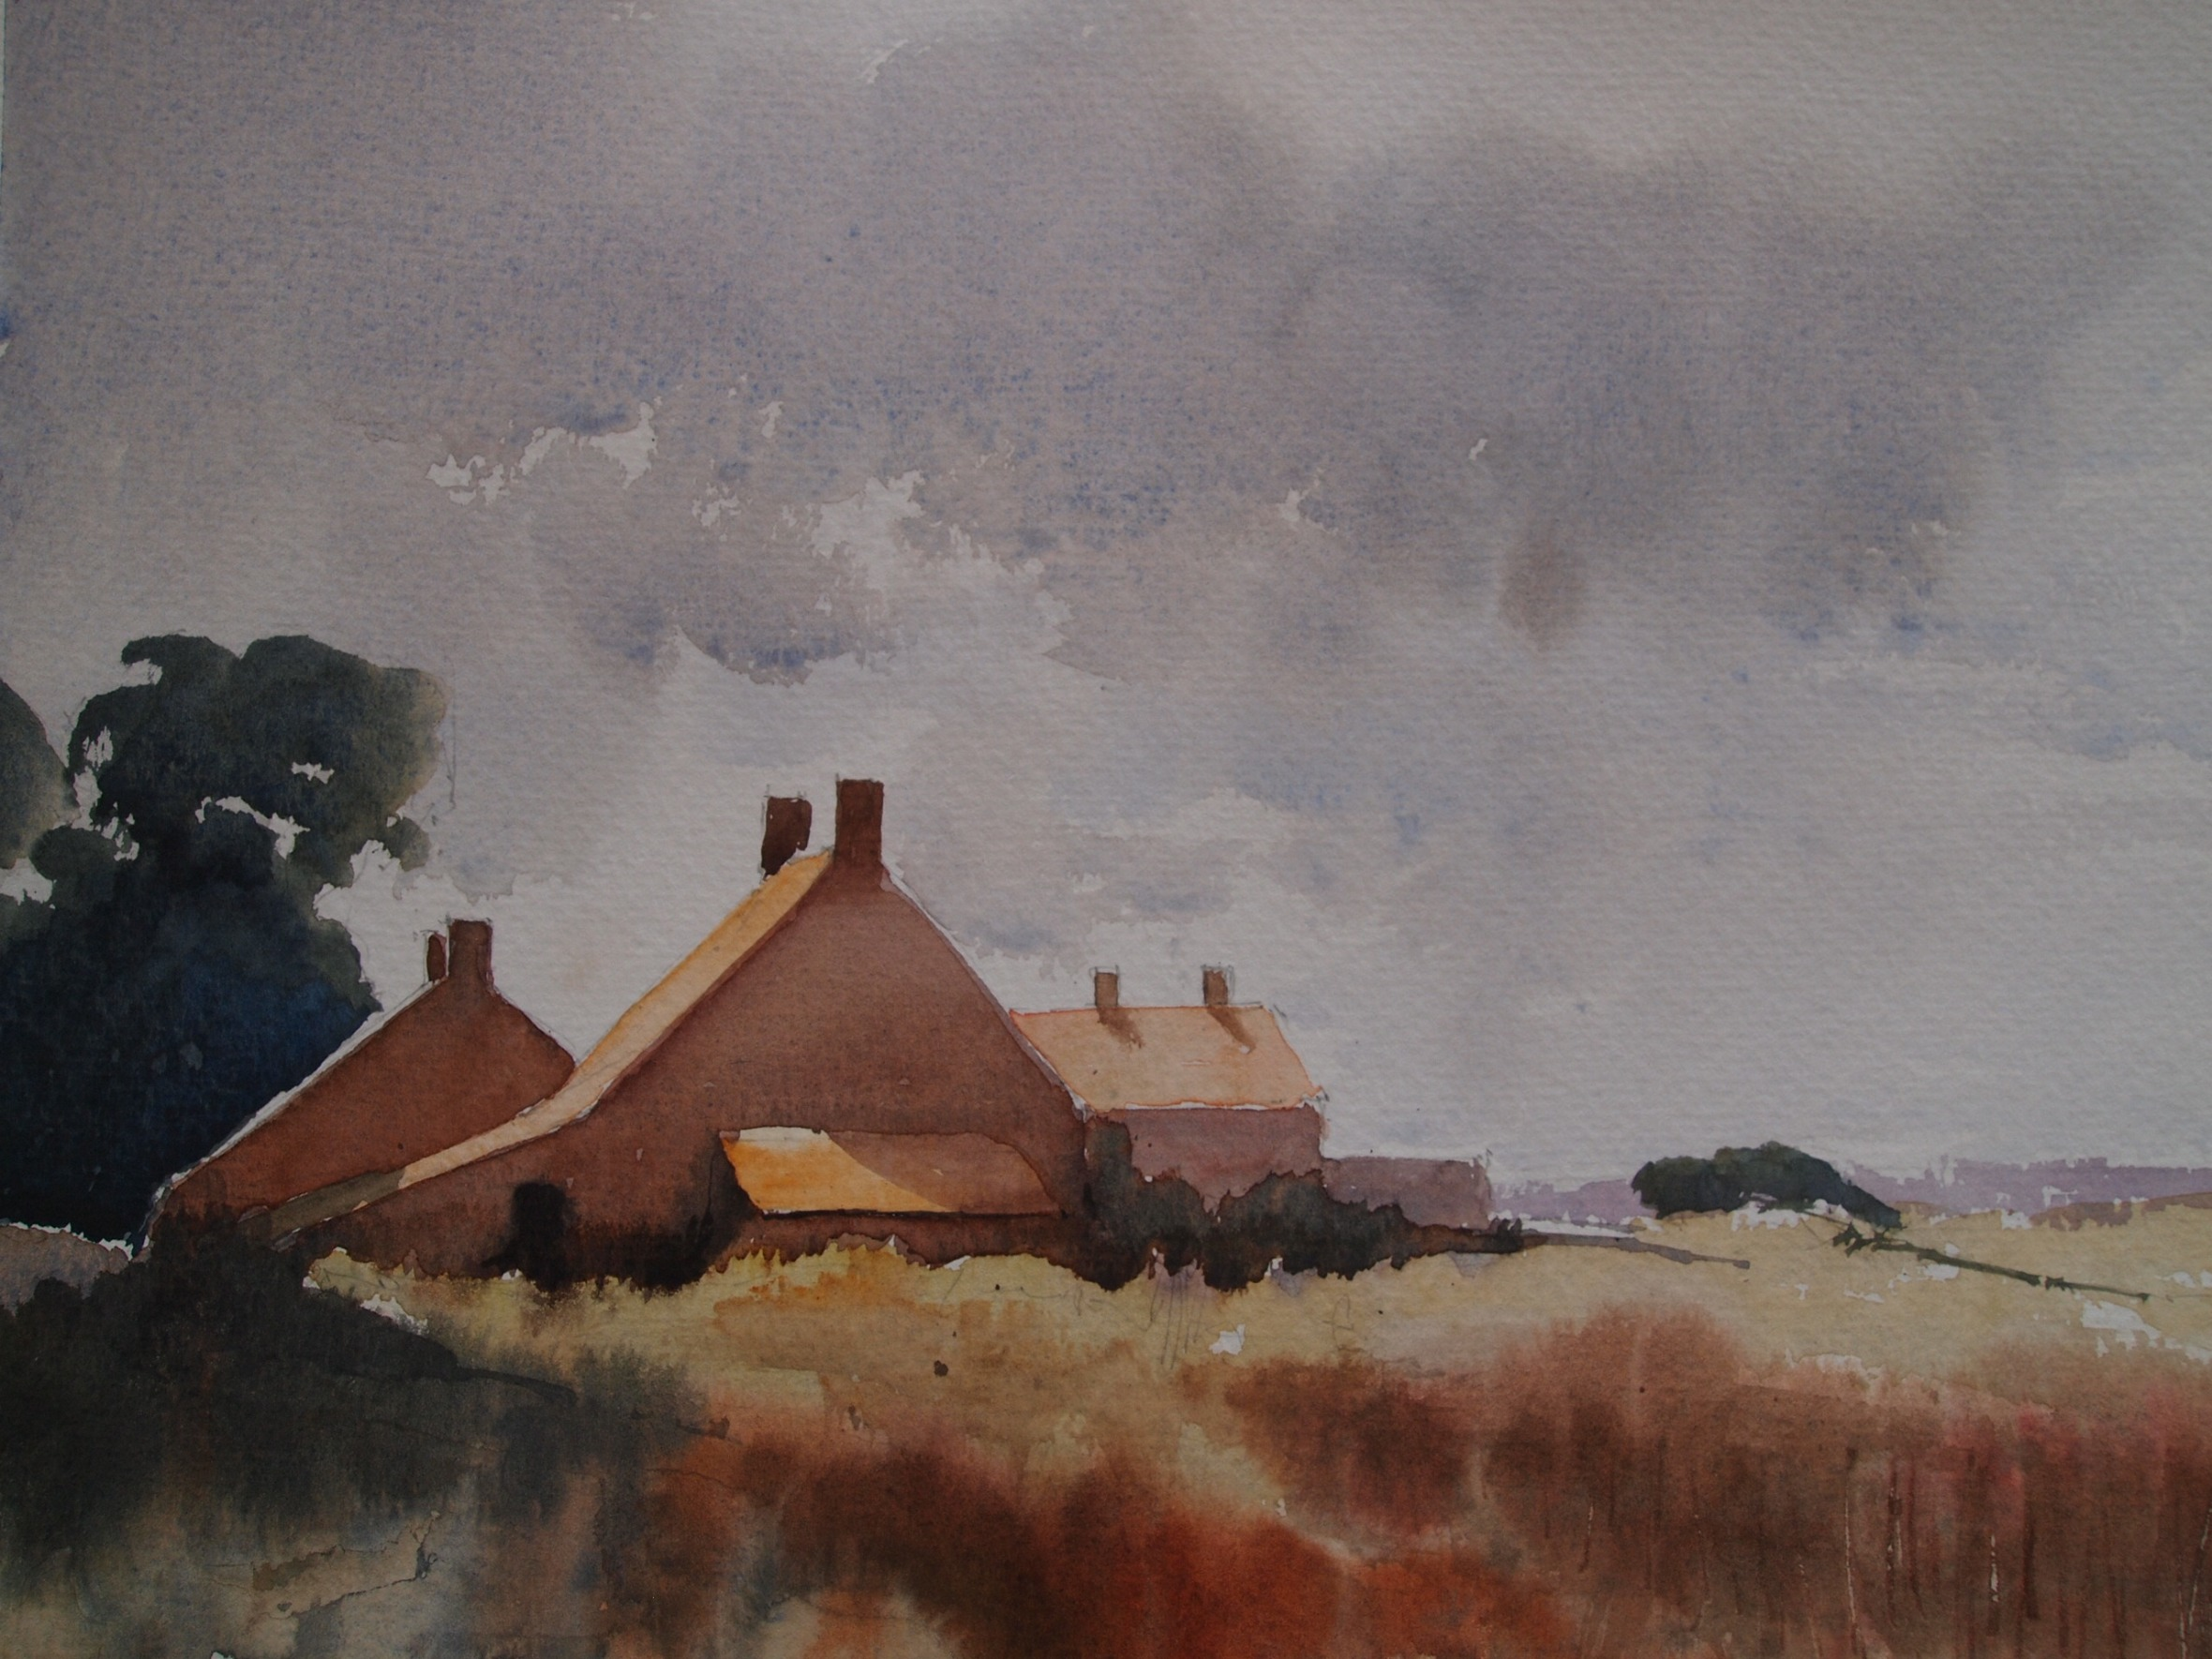 Edward Seago study based on 'Norfolk Cottages' - painted on quarter imperial Bockingford rough